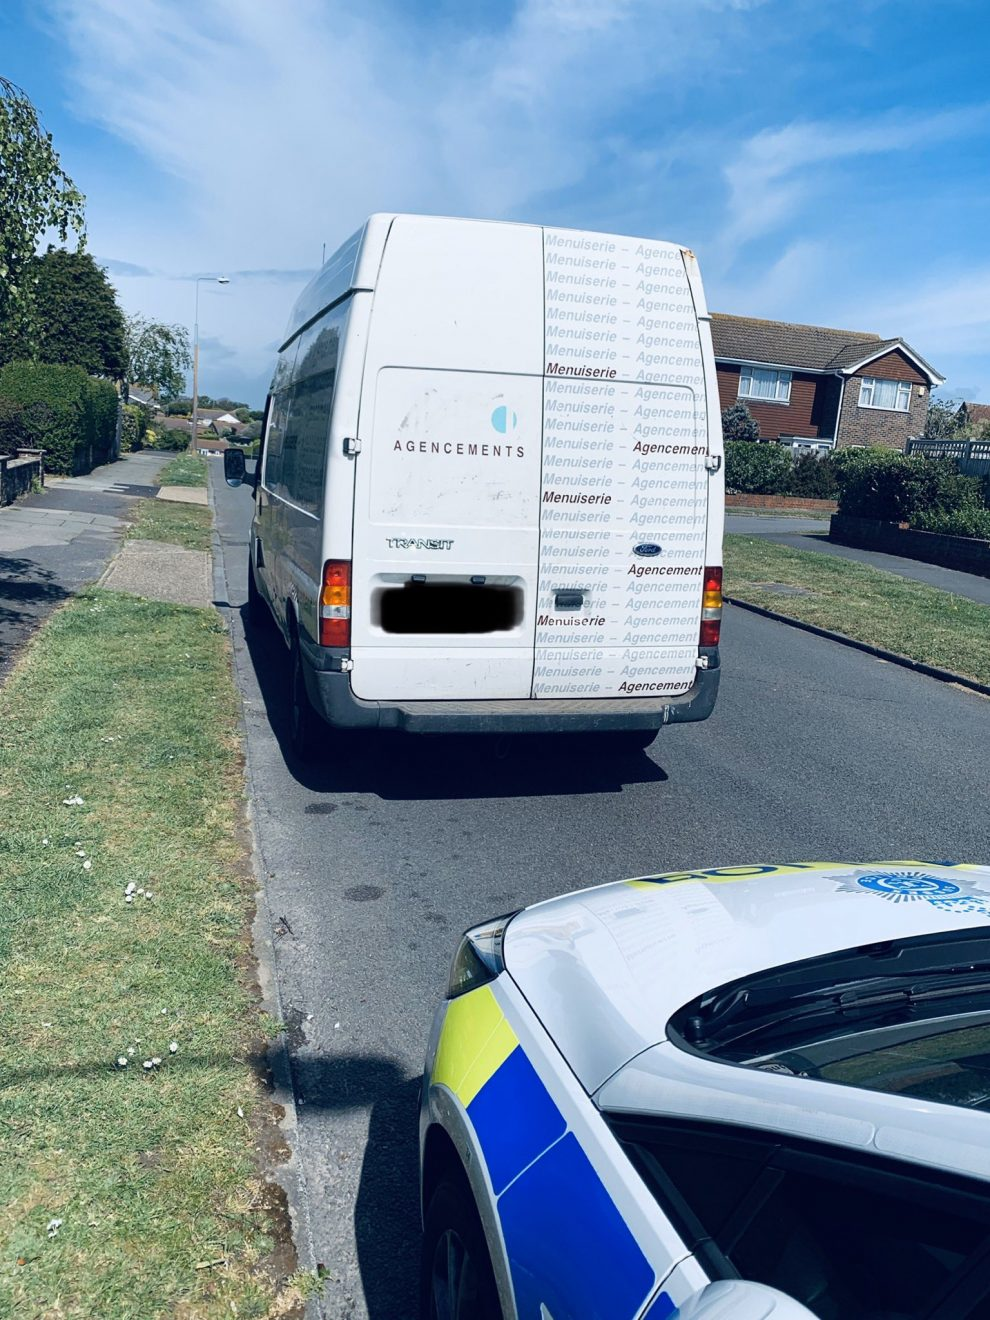 Two charged with theft offences in Peacehaven